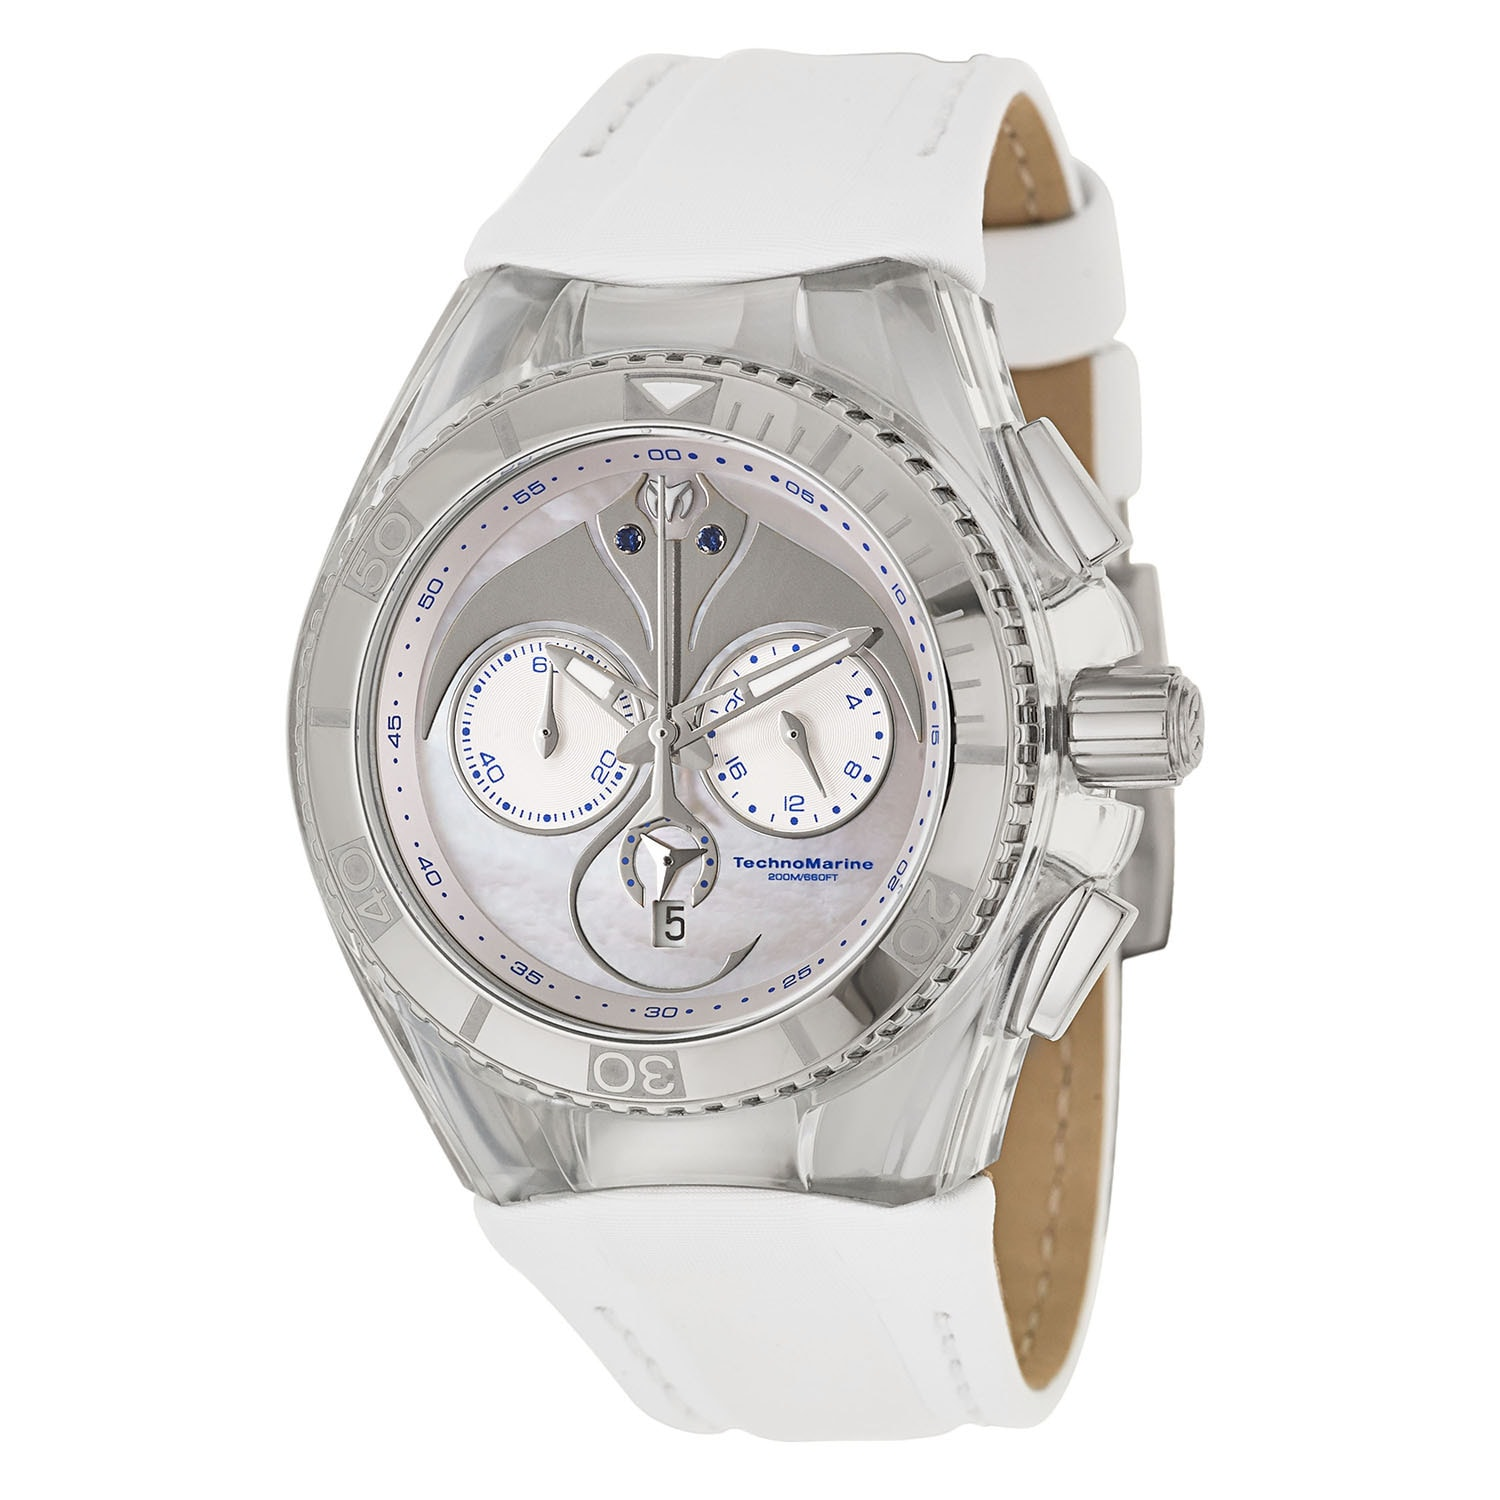 EDOX TechnoMarine Women's 113002 Silicone Watch (Watch), ...